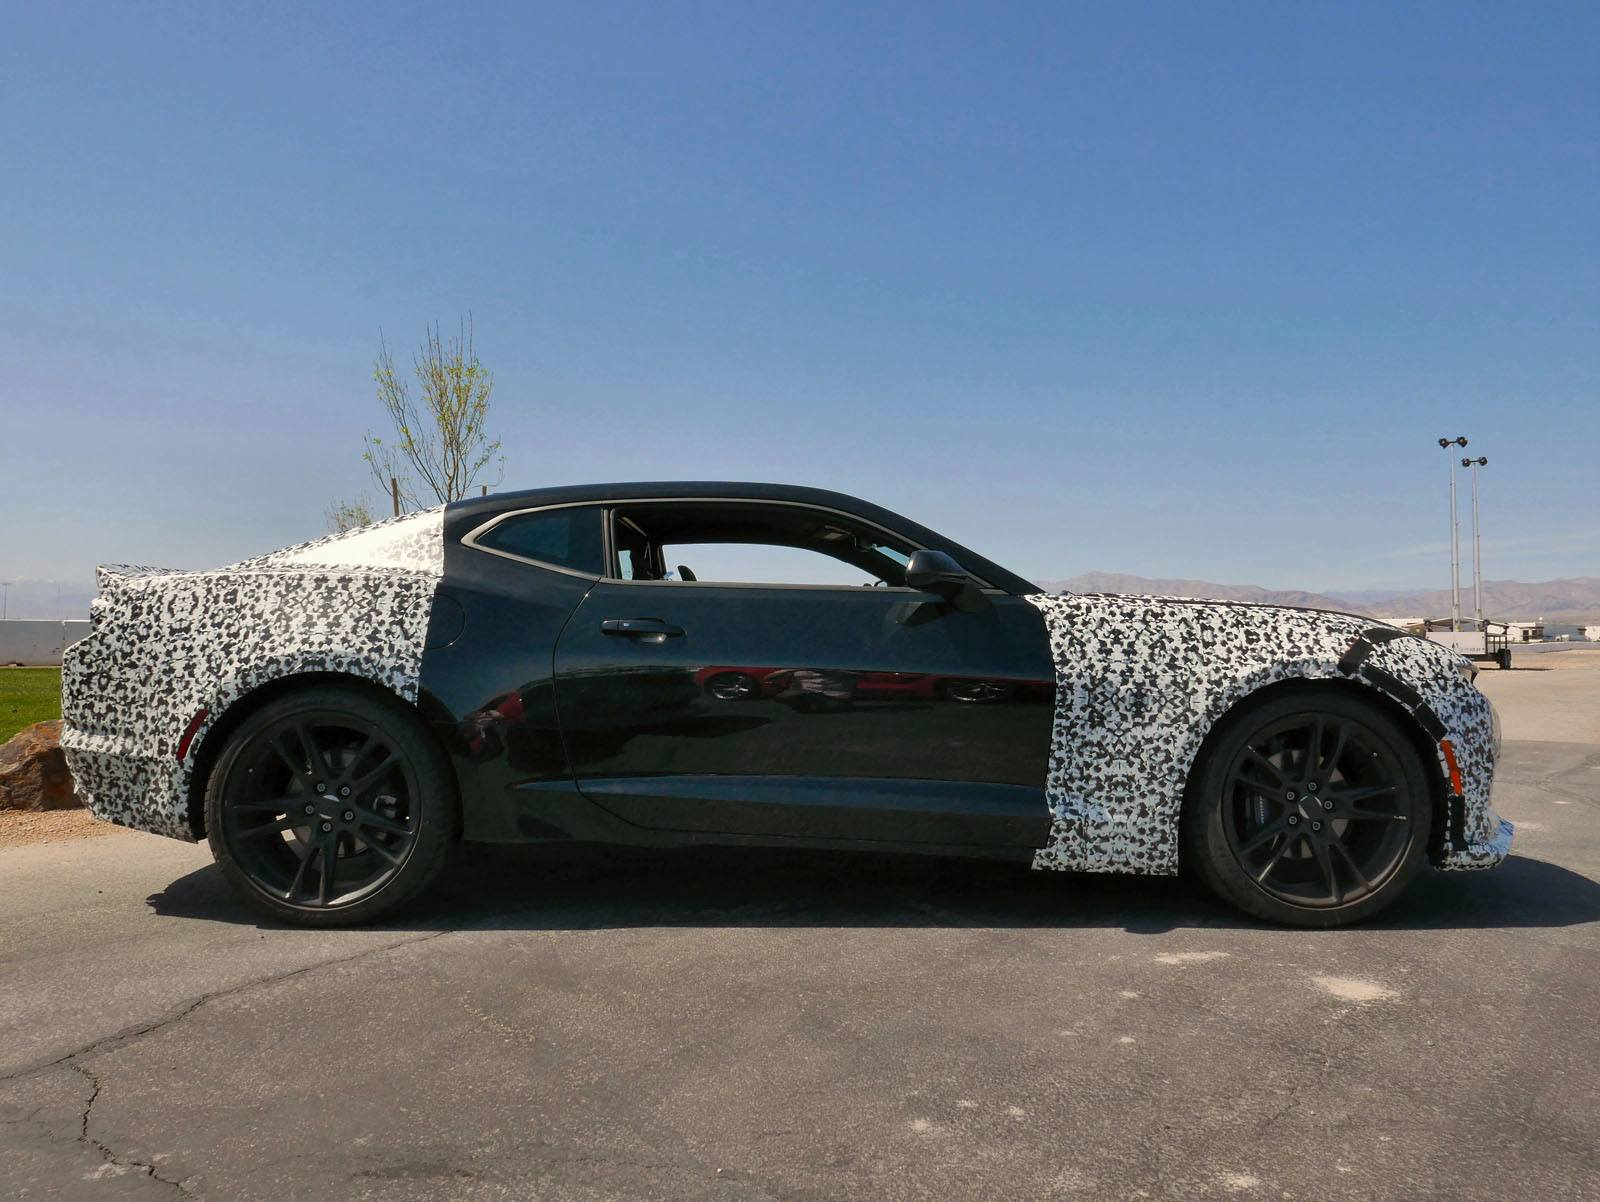 2019 Chevrolet Camaro Turbo 1LE-Hunting-06